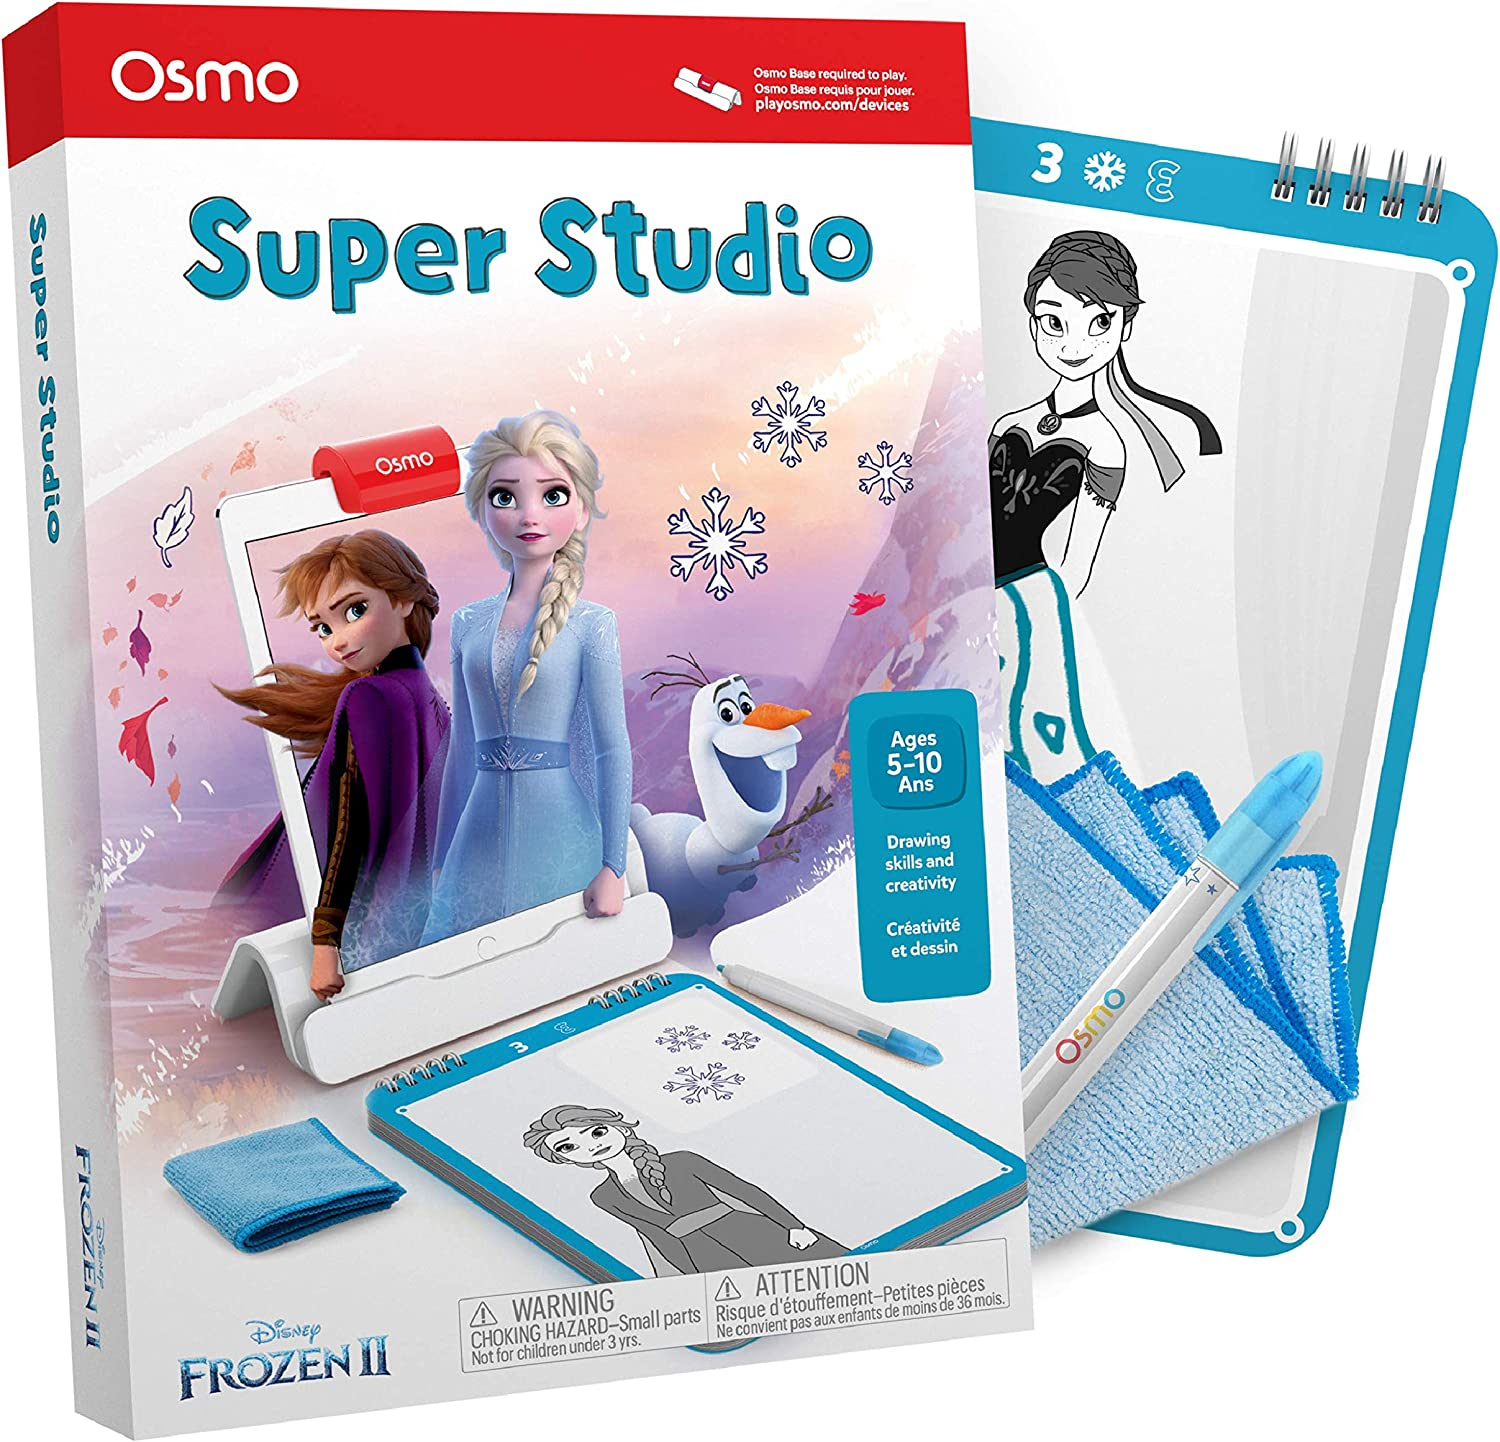 Osmo - Super Studio Disney Frozen 2 - Ages 5-11 - Drawing Activites - For iPad or Fire Tablet (Osmo Base Required)